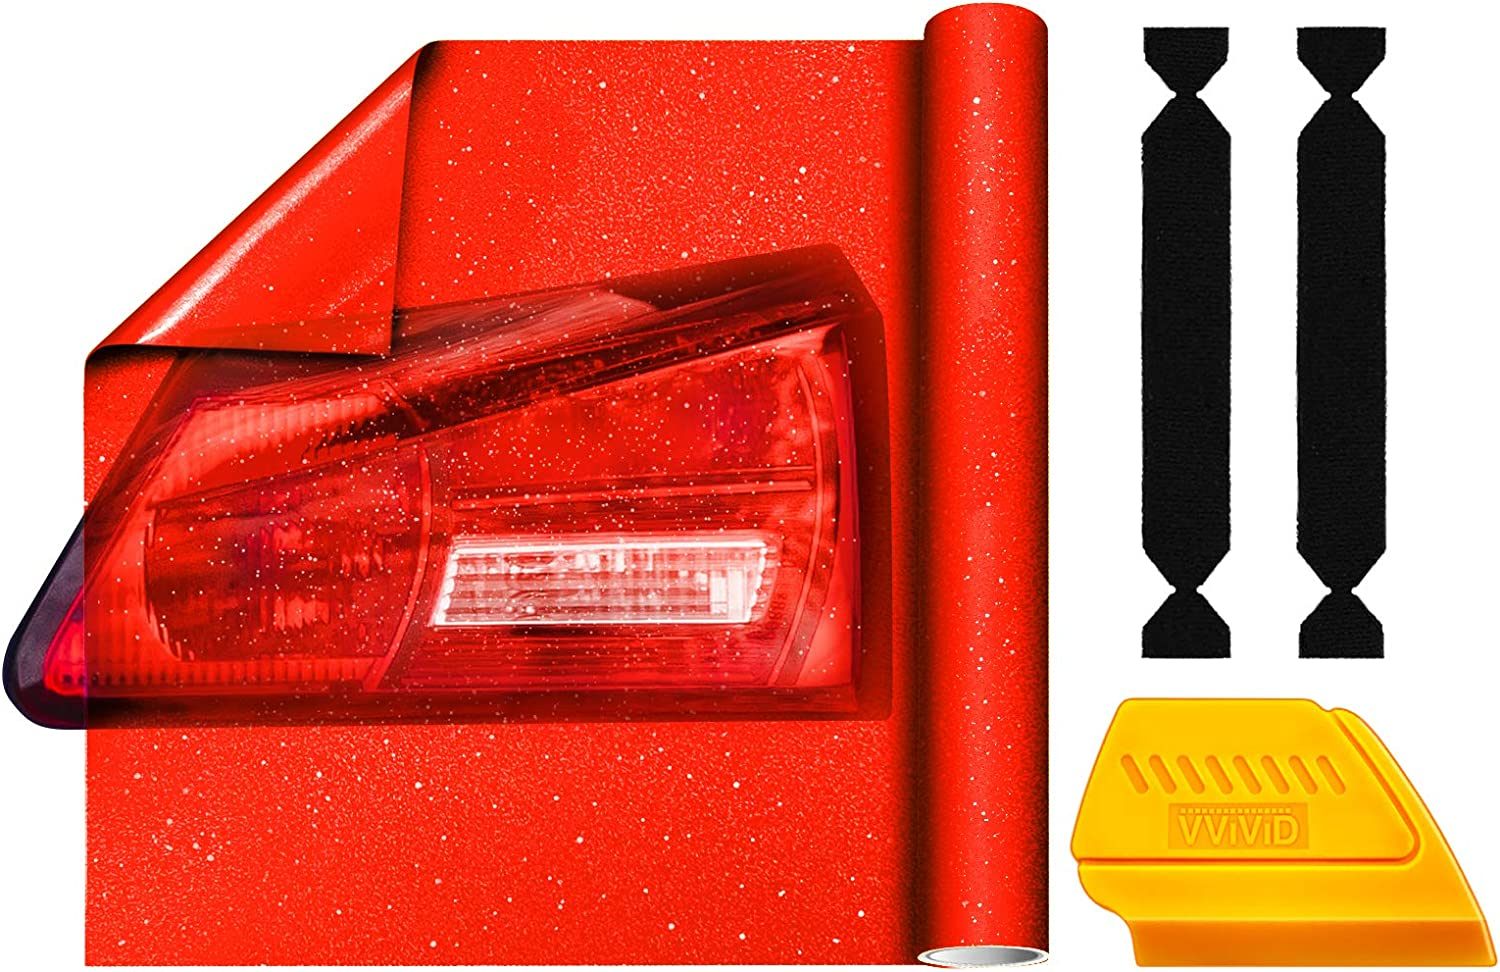 VViViD Red Crystal Tint Taillight Frosted Automotive Air-Release Max 58% OFF Popular popular